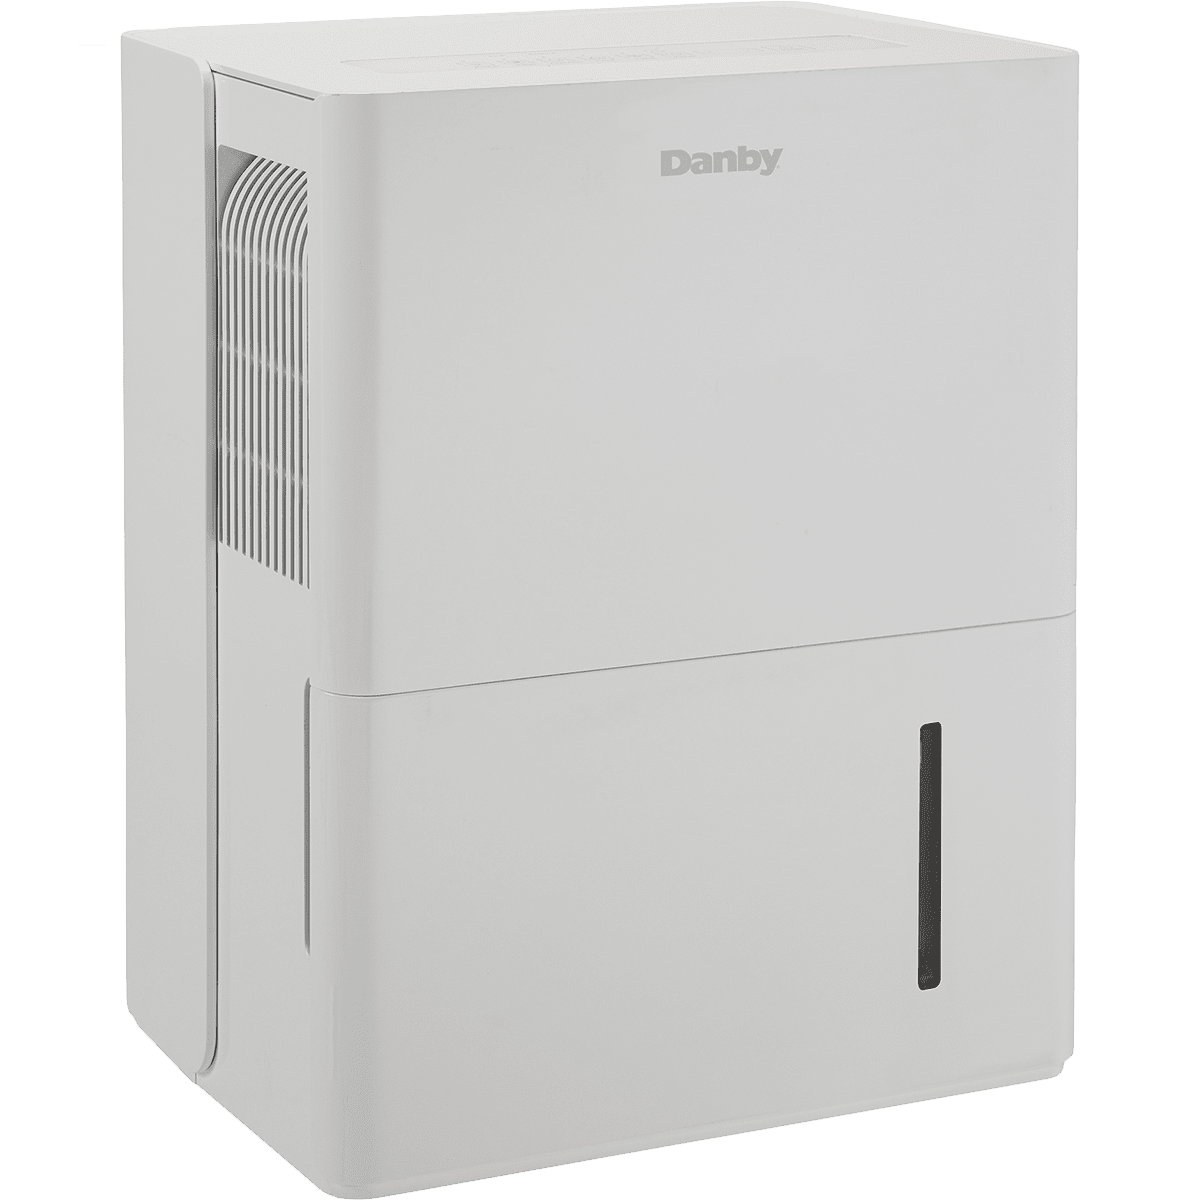 frigidaire dehumidifier 50 pint manual